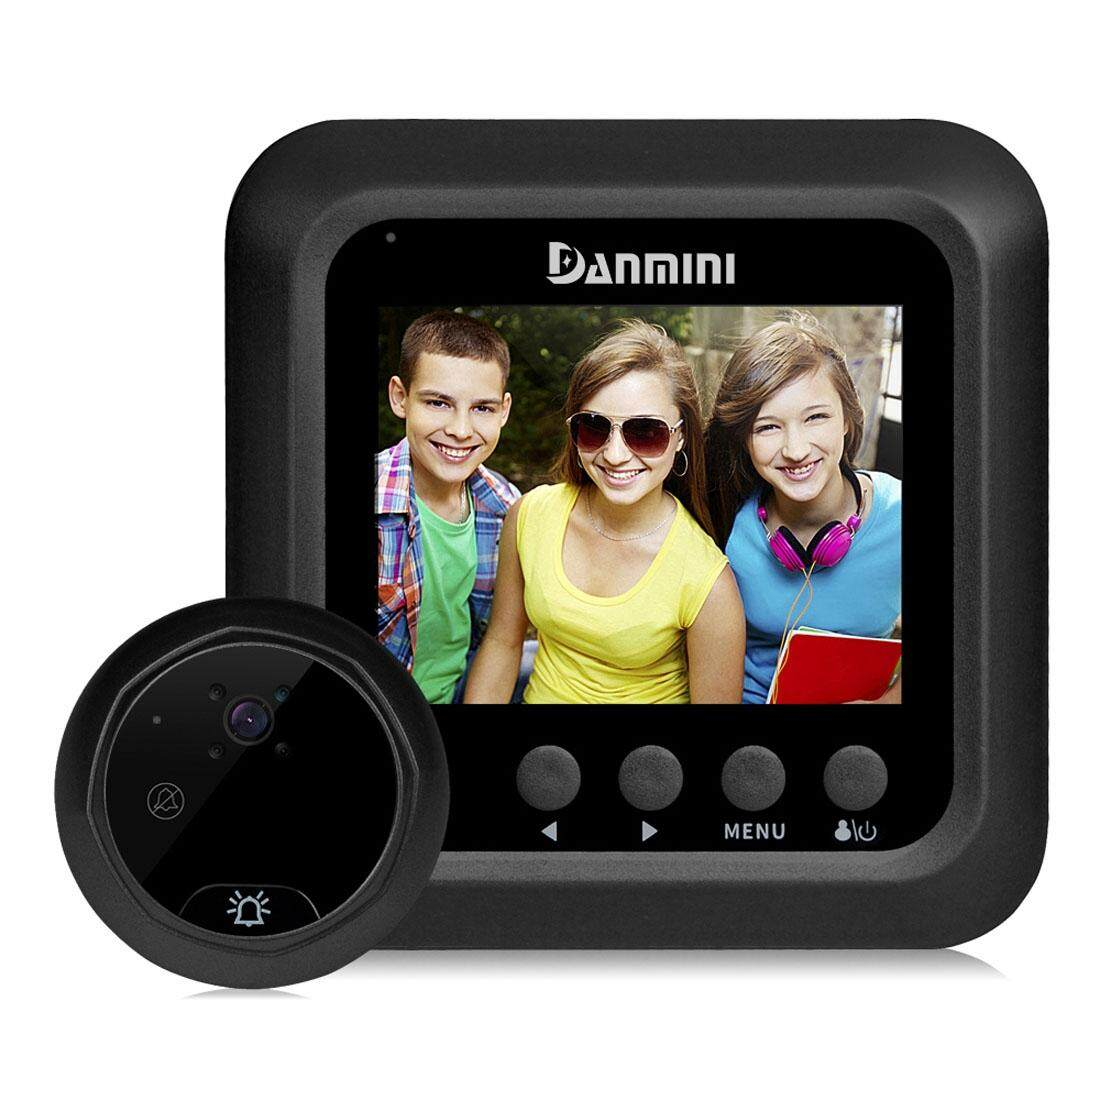 Purchase Danmini W5 2 4 Inch Screen 2 0Mp Security Camera No Disturb Peephole Viewer Support Tf Card Night Vision Video Recording Black Intl